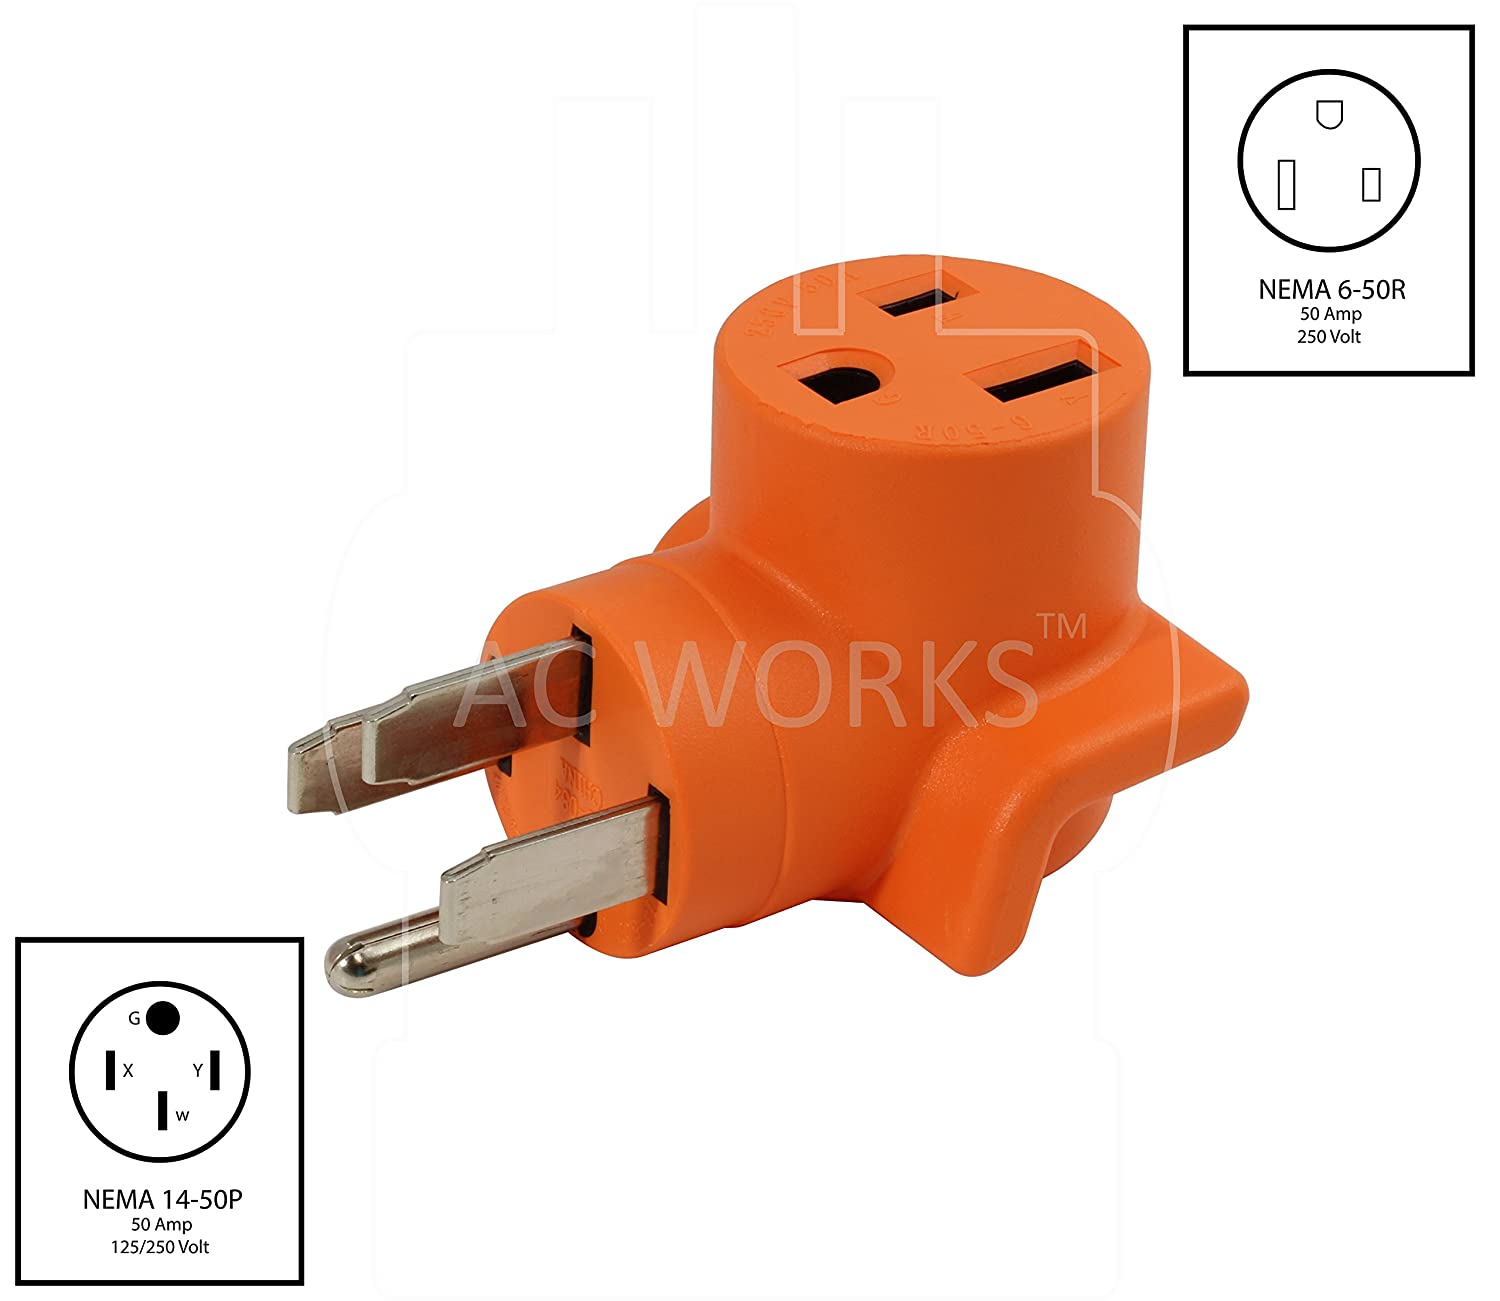 AC WORKS [WD1450650] 50Amp RV/ Range/ Generator 14-50 Plug to 6-50R 50Amp  250V Welder adapter - - Amazon.com